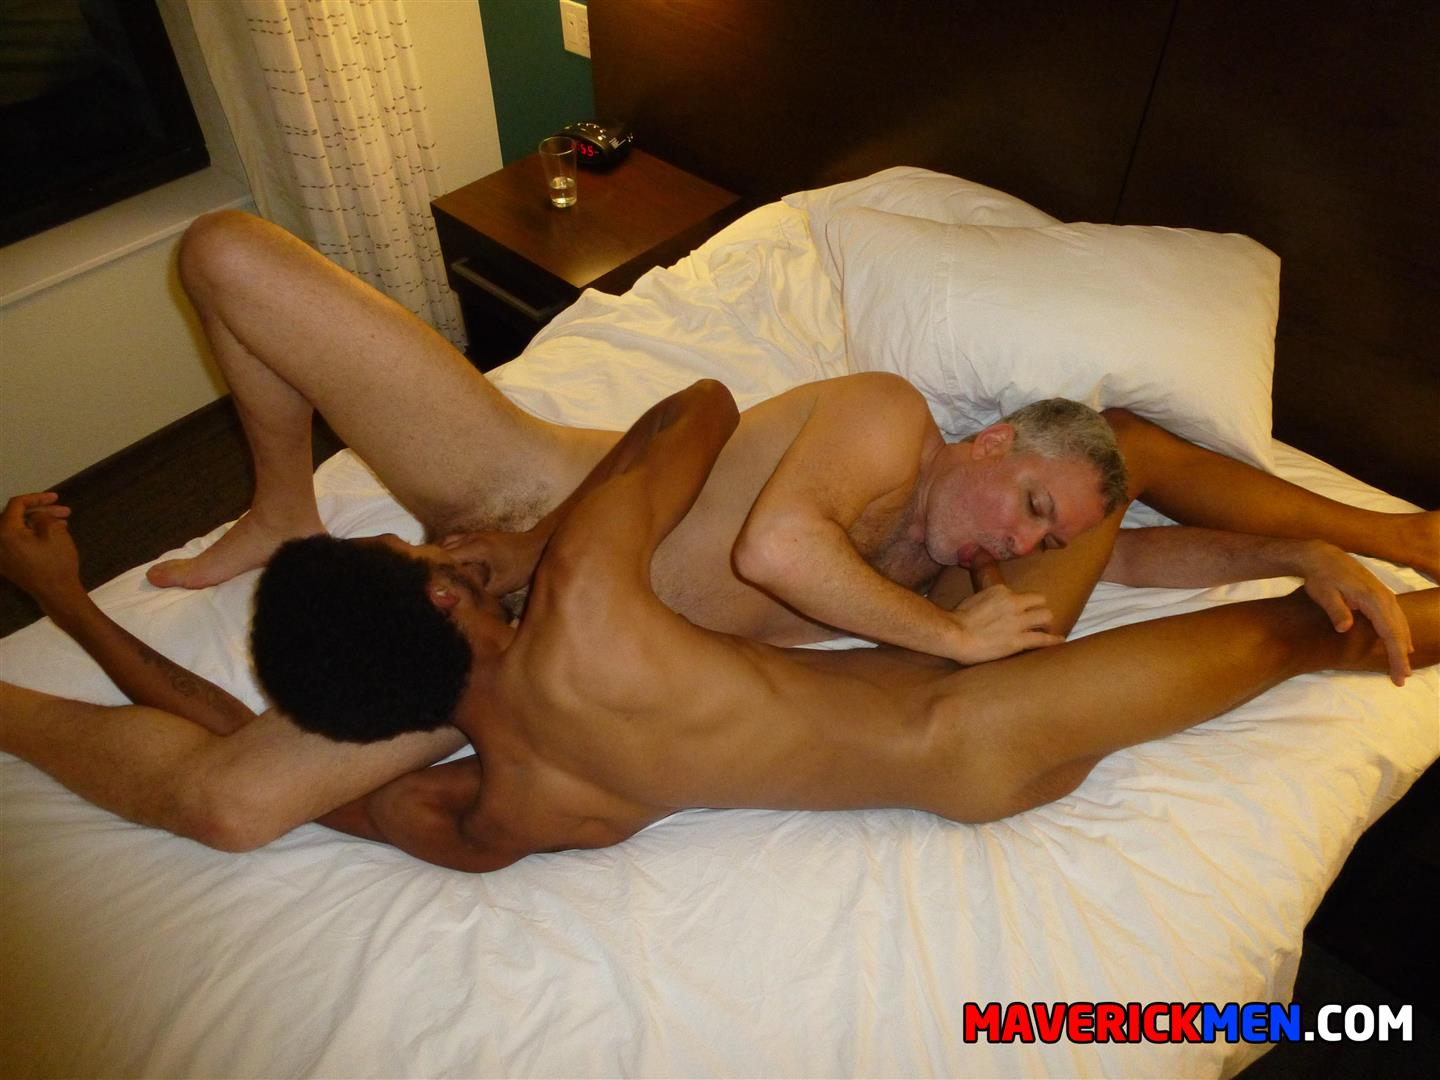 Maverick Men Richie Black Twink Takes Two Muscle Daddy Cocks Bareback Amateur Gay Porn 23